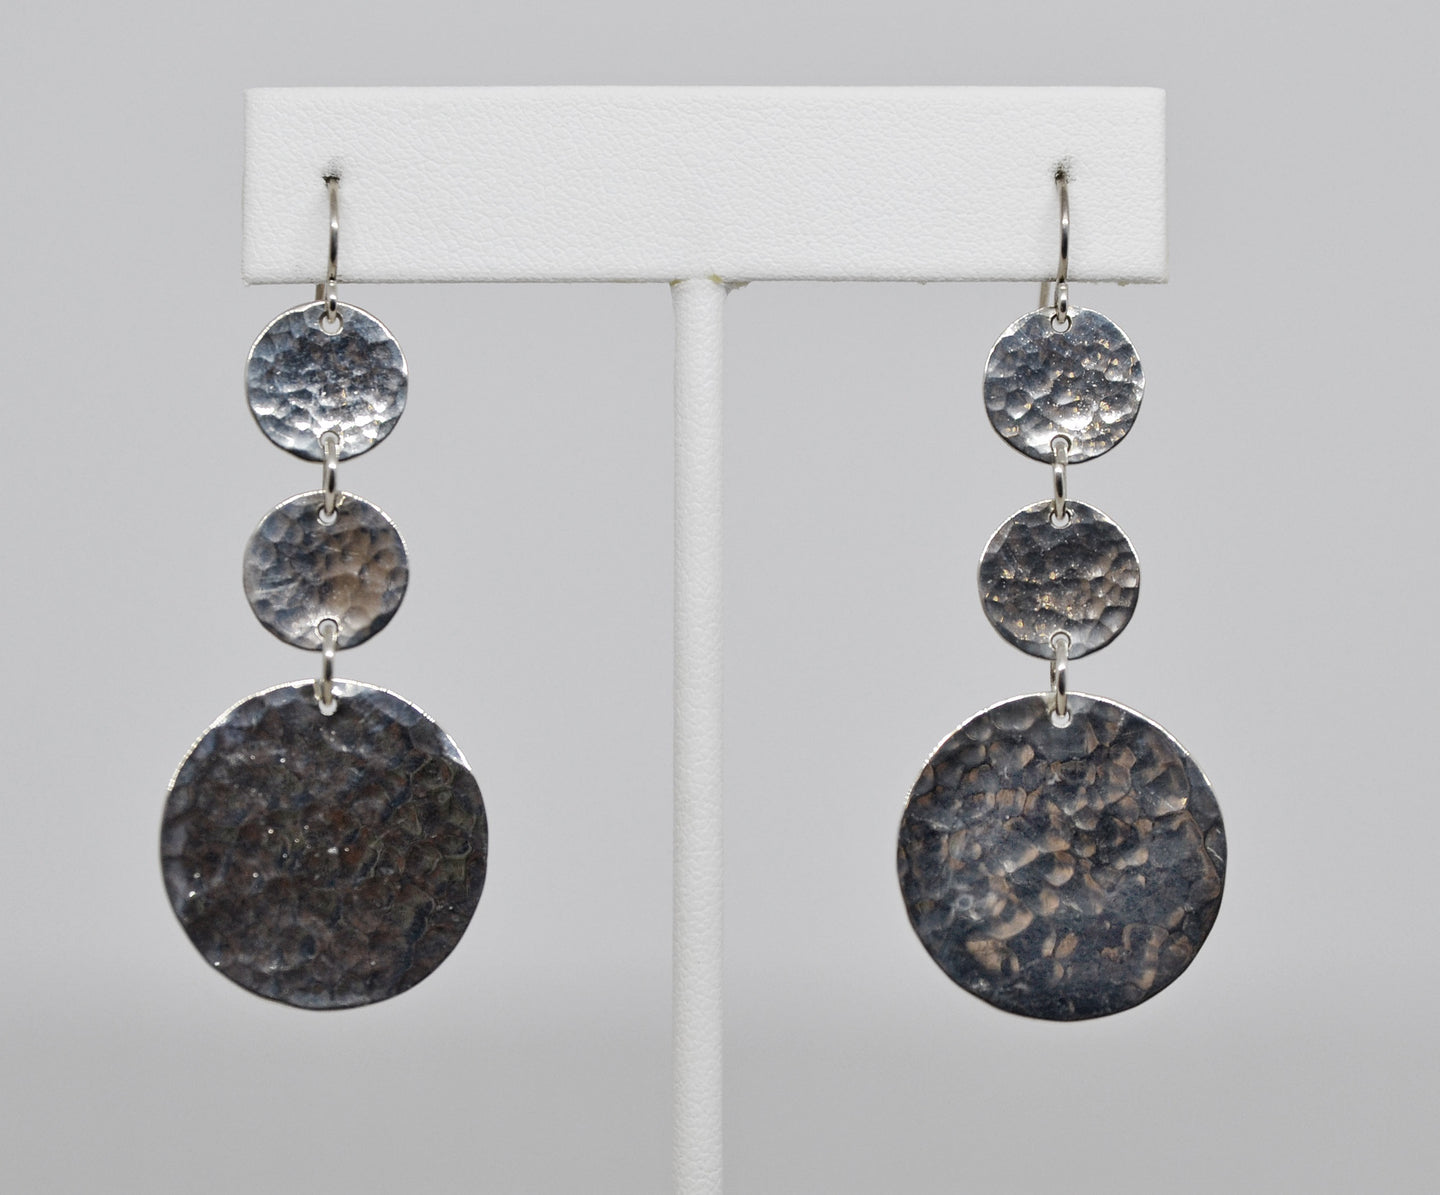 3-Disc Sterling Silver Earrings by Christina Chomel